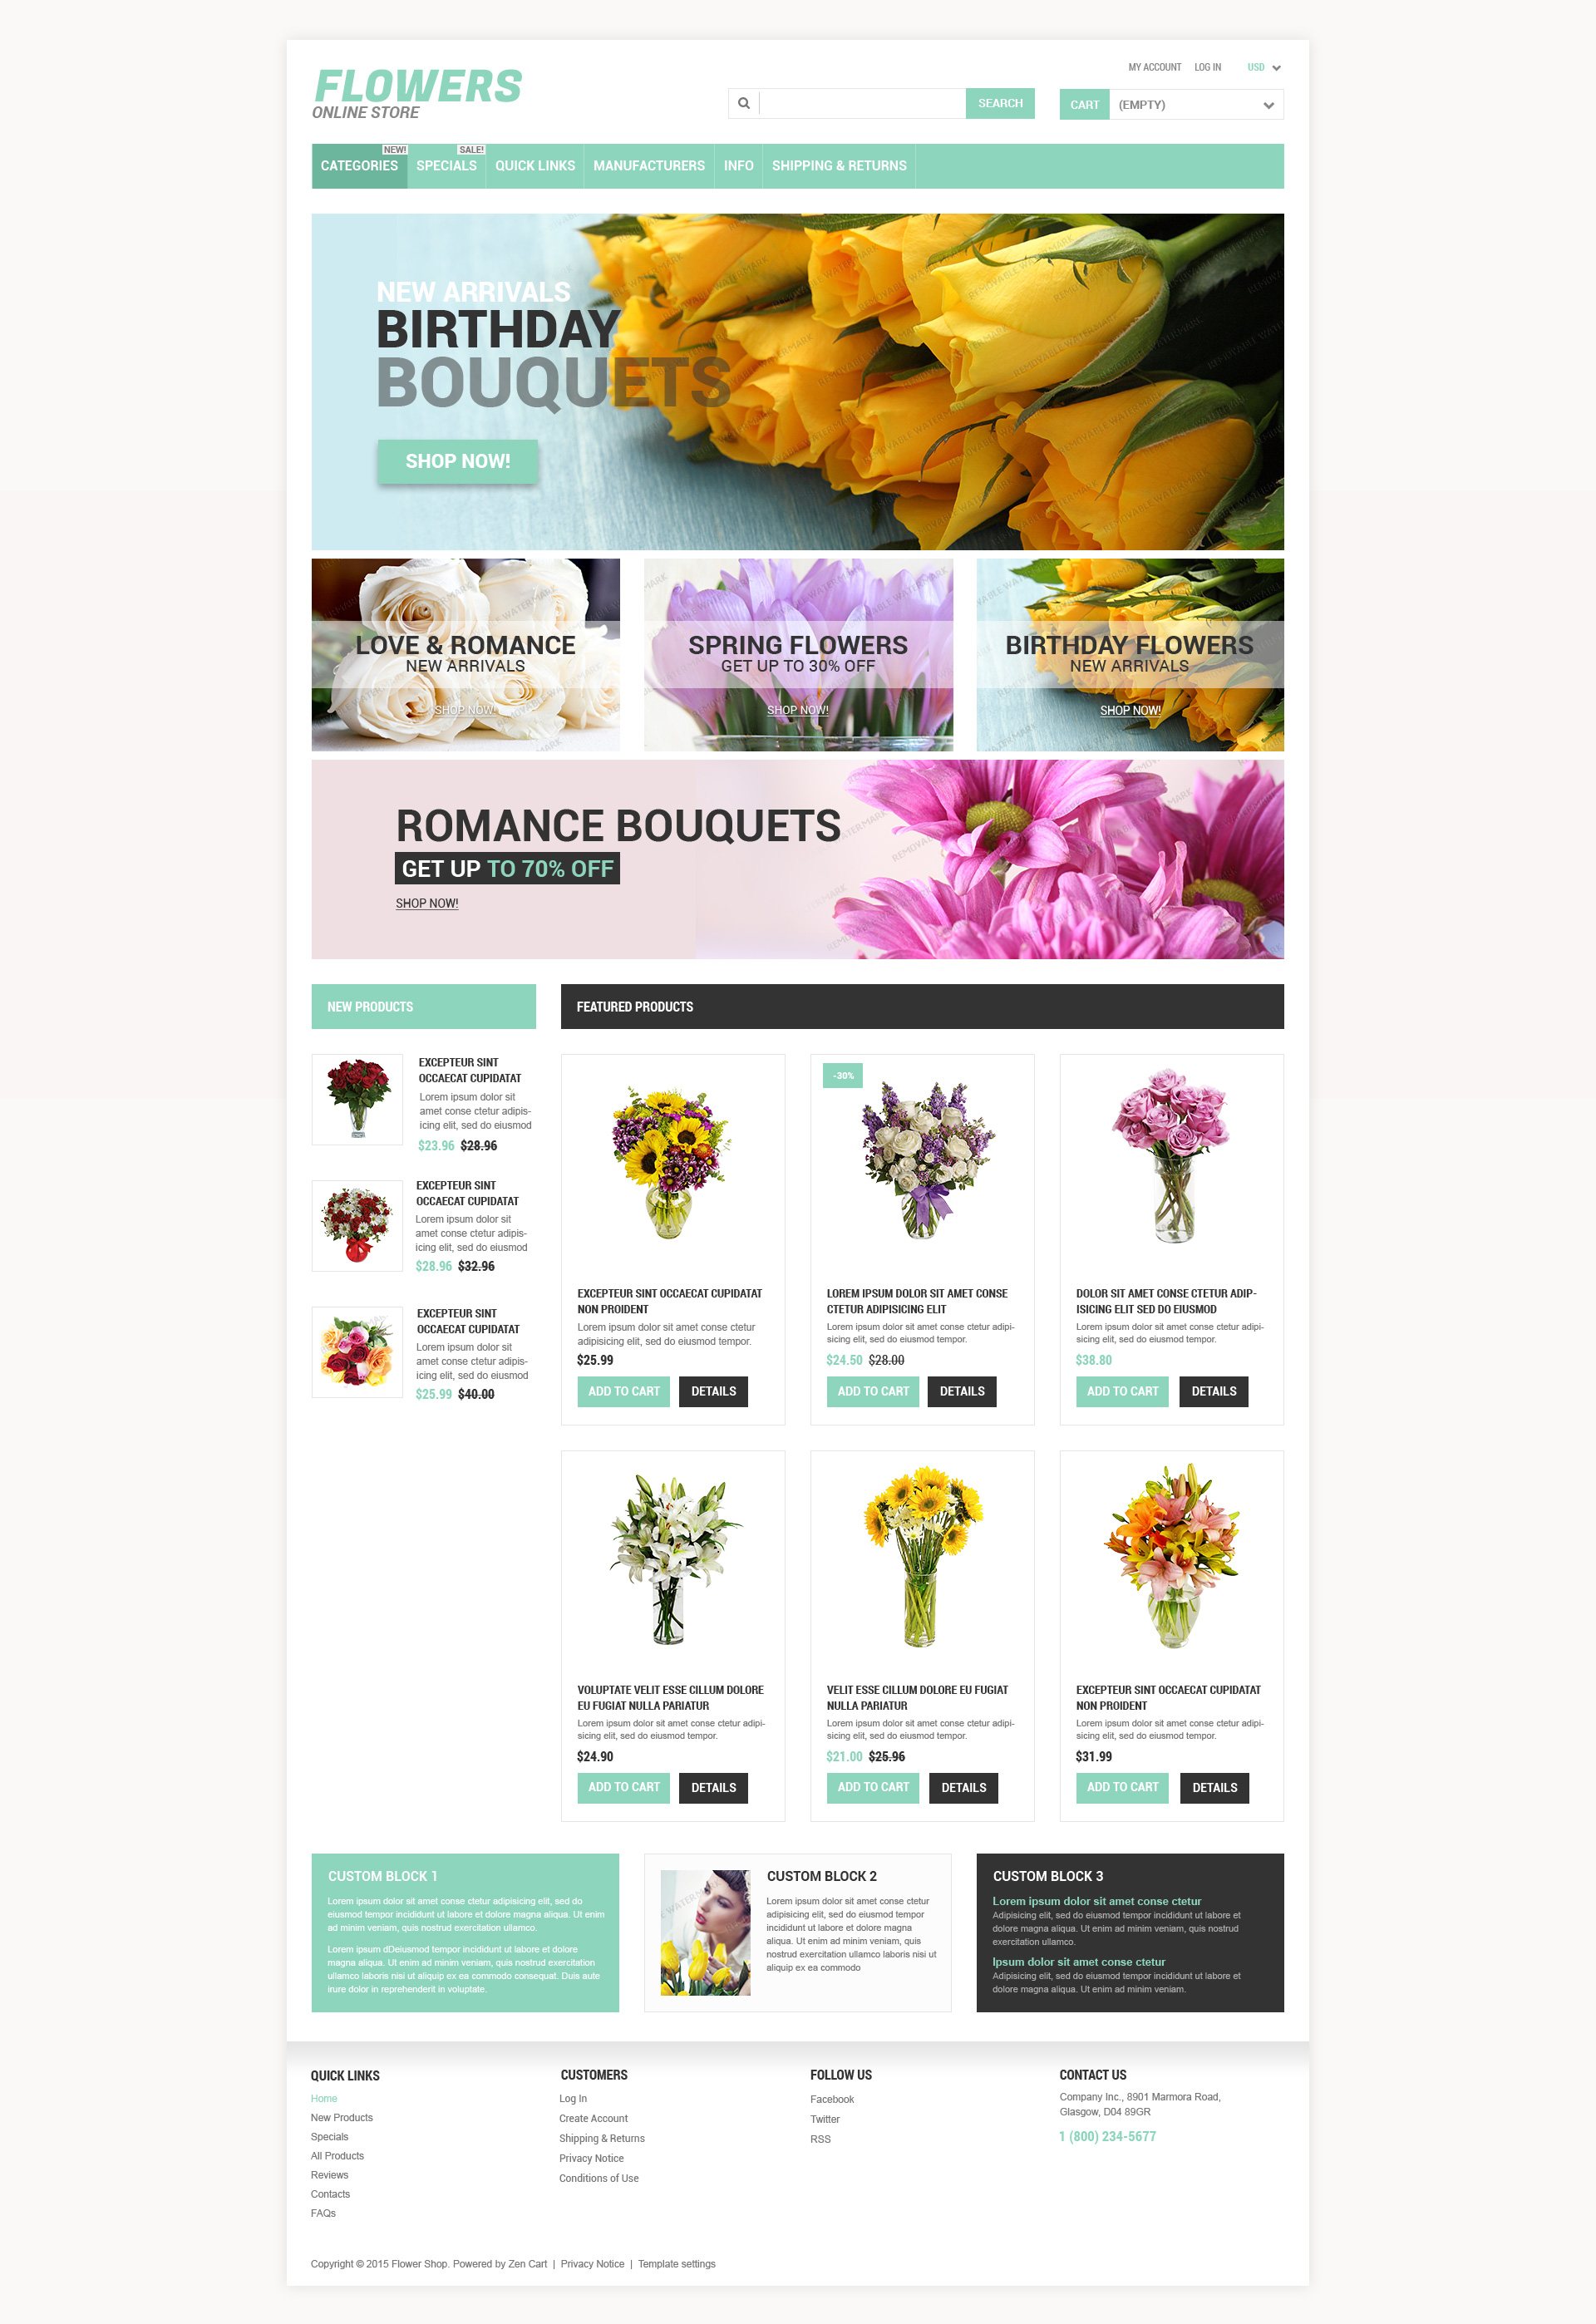 The Flower Online Store Zen Cart Design 53757, one of the best ZenCart templates of its kind (flowers), also known as flower online store ZenCart template, flowers ZenCart template, gifts ZenCart template, birthday ZenCart template, wedding ZenCart template, engagement ZenCart template, occasions ZenCart template, specials ZenCart template, exclusive ZenCart template, roses ZenCart template, lilies ZenCart template, orchid ZenCart template, chrysanthemum ZenCart template, tulip ZenCart template, order ZenCart template, services ZenCart template, order ZenCart template, packing ZenCart template, present ZenCart template, cards ZenCart template, holiday ZenCart template, celebration ZenCart template, catalog ZenCart template, delivery ZenCart template, chamomile ZenCart template, daisy ZenCart template, rose ZenCart template, bouquet ZenCart template, wrapping and related with flower online store, flowers, gifts, birthday, wedding, engagement, occasions, specials, exclusive, roses, lilies, orchid, chrysanthemum, tulip, order, services, order, packing, present, cards, holiday, celebration, catalog, delivery, chamomile, daisy, rose, bouquet, wrapping, etc.